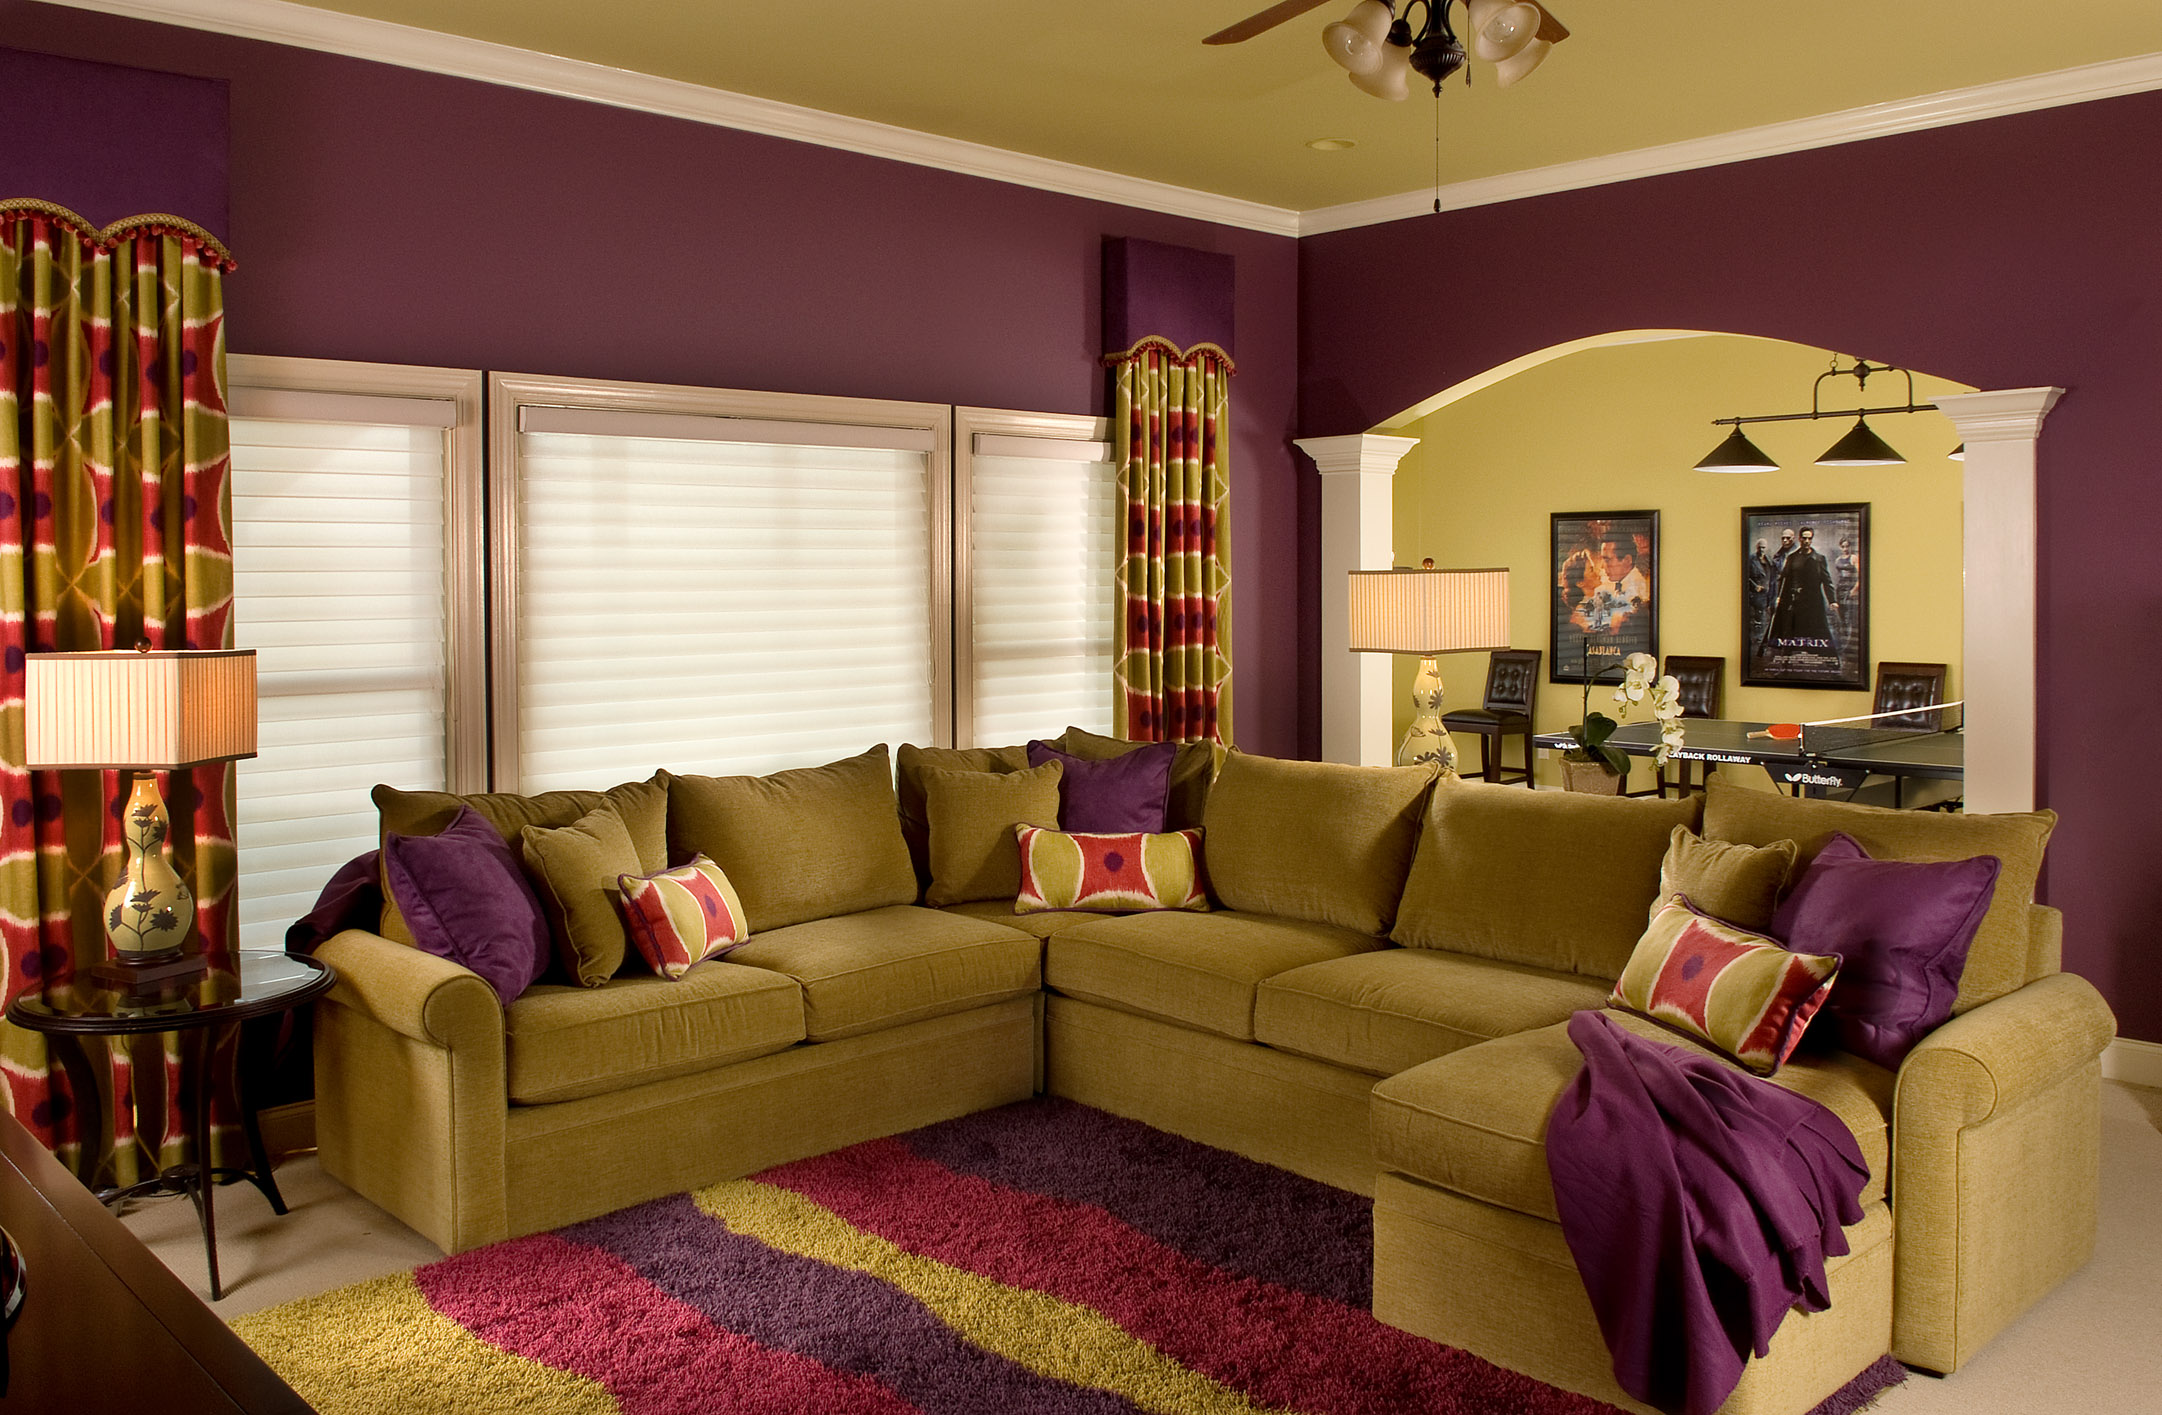 best-interior-wall-paint-colors-design-for-living-room-design-with-purple-colors-paints-schemes